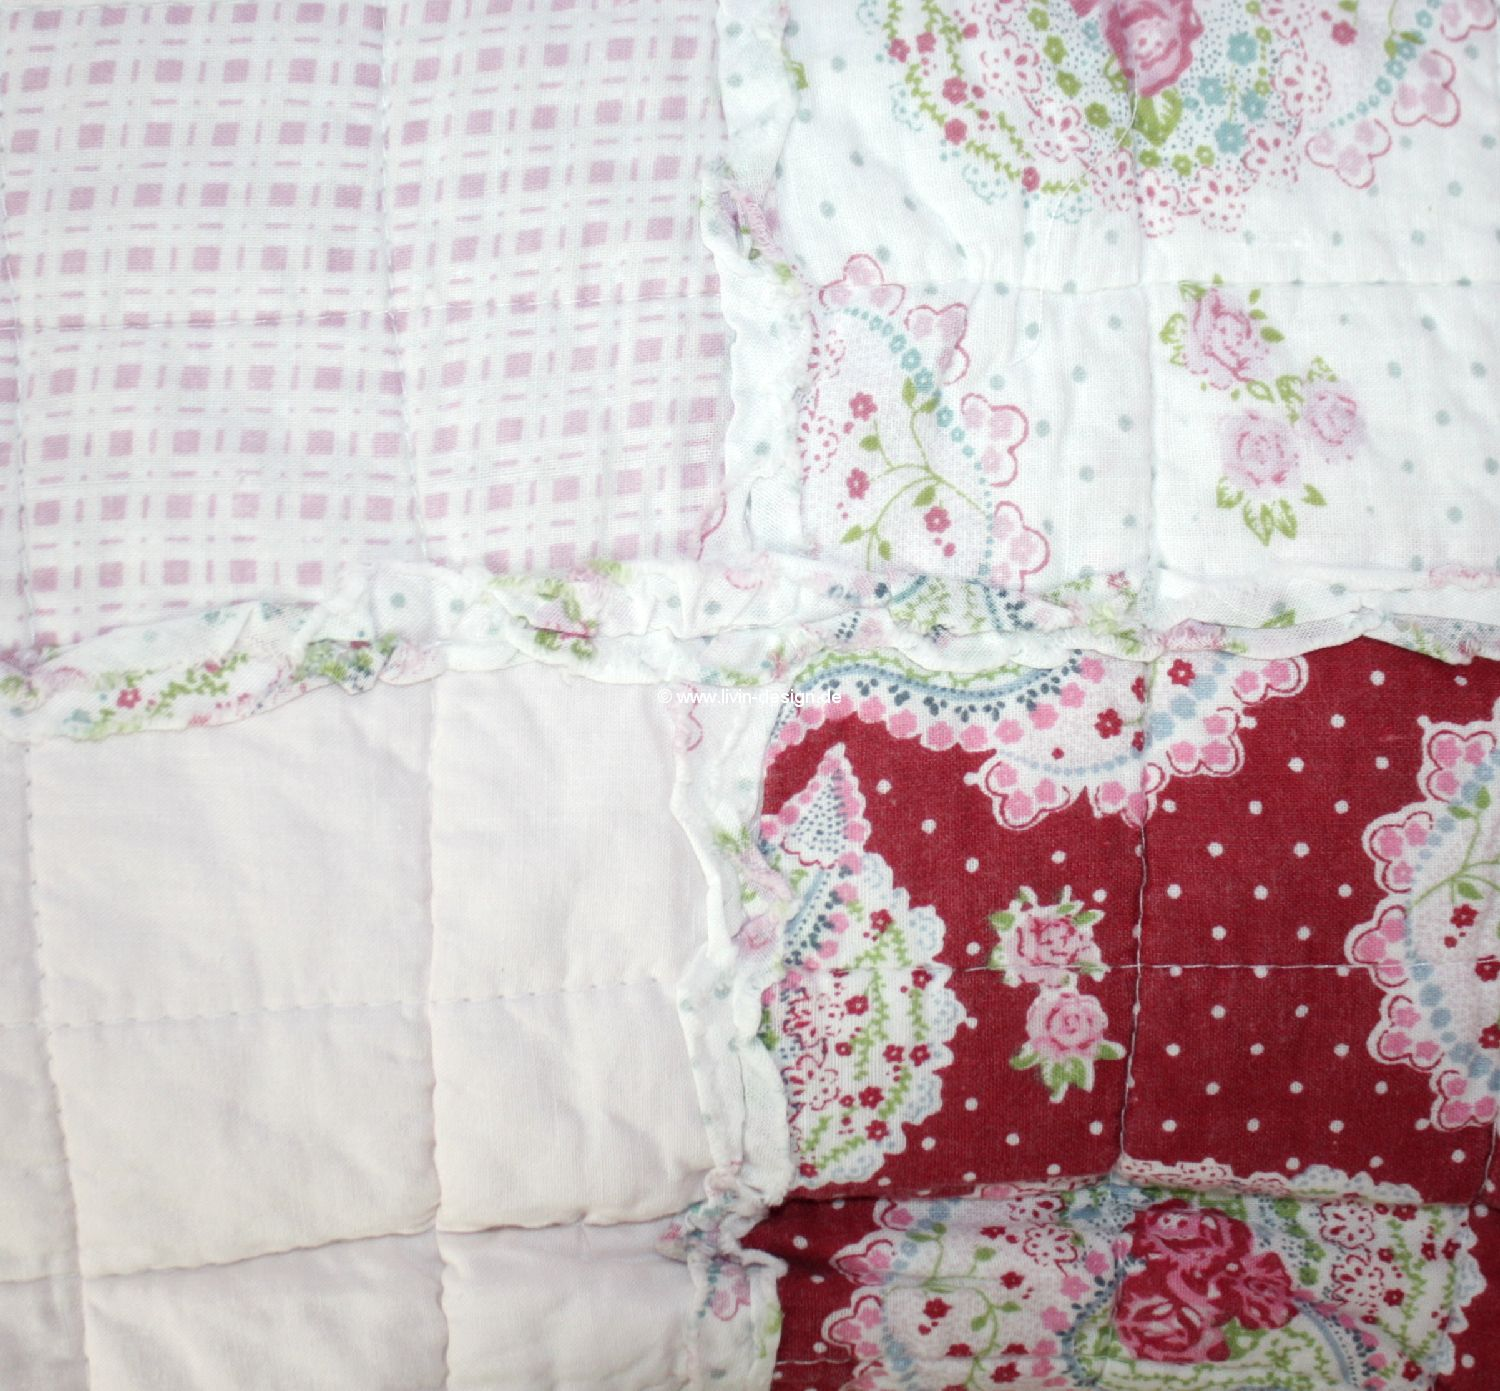 Tagesdecke quilt plaid joseira paisley rosa rot 140x200 cm for Tagesdecke paisley